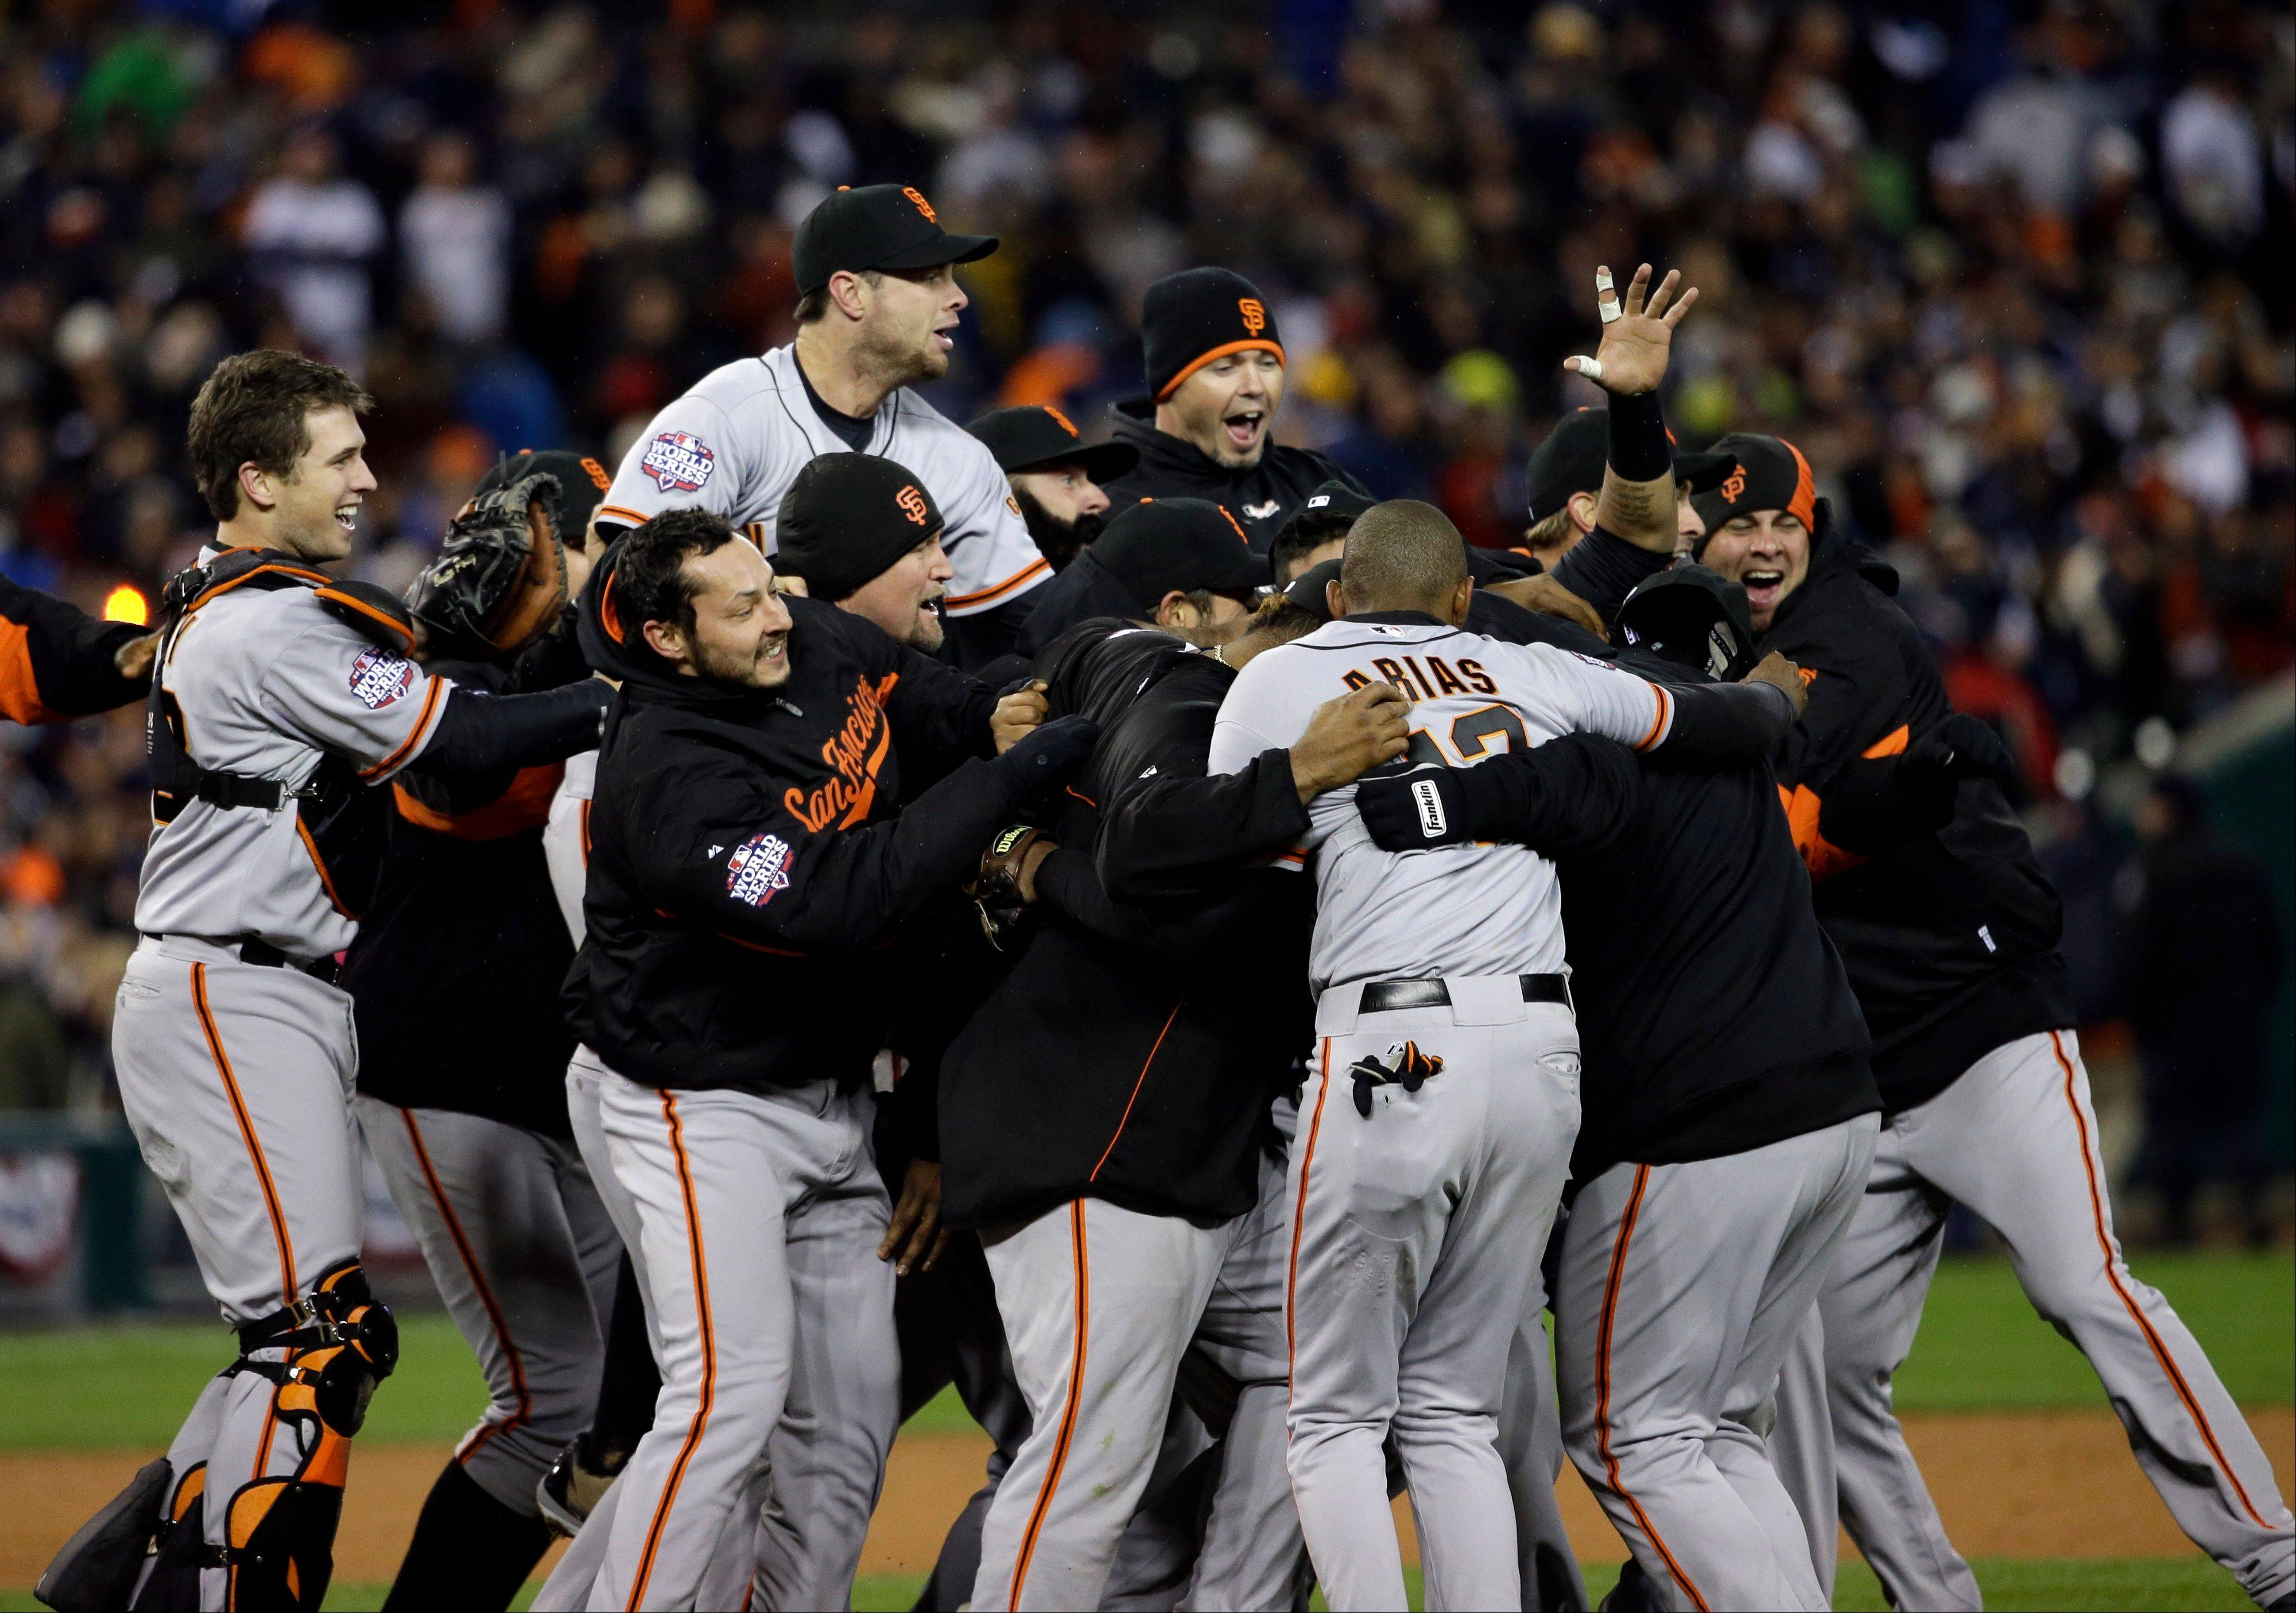 The San Francisco Giants celebrate after winning Game 4 of baseball�s World Series against the Detroit Tigers Sunday, Oct. 28, 2012, in Detroit. The Giants won 4-3 to win the series.